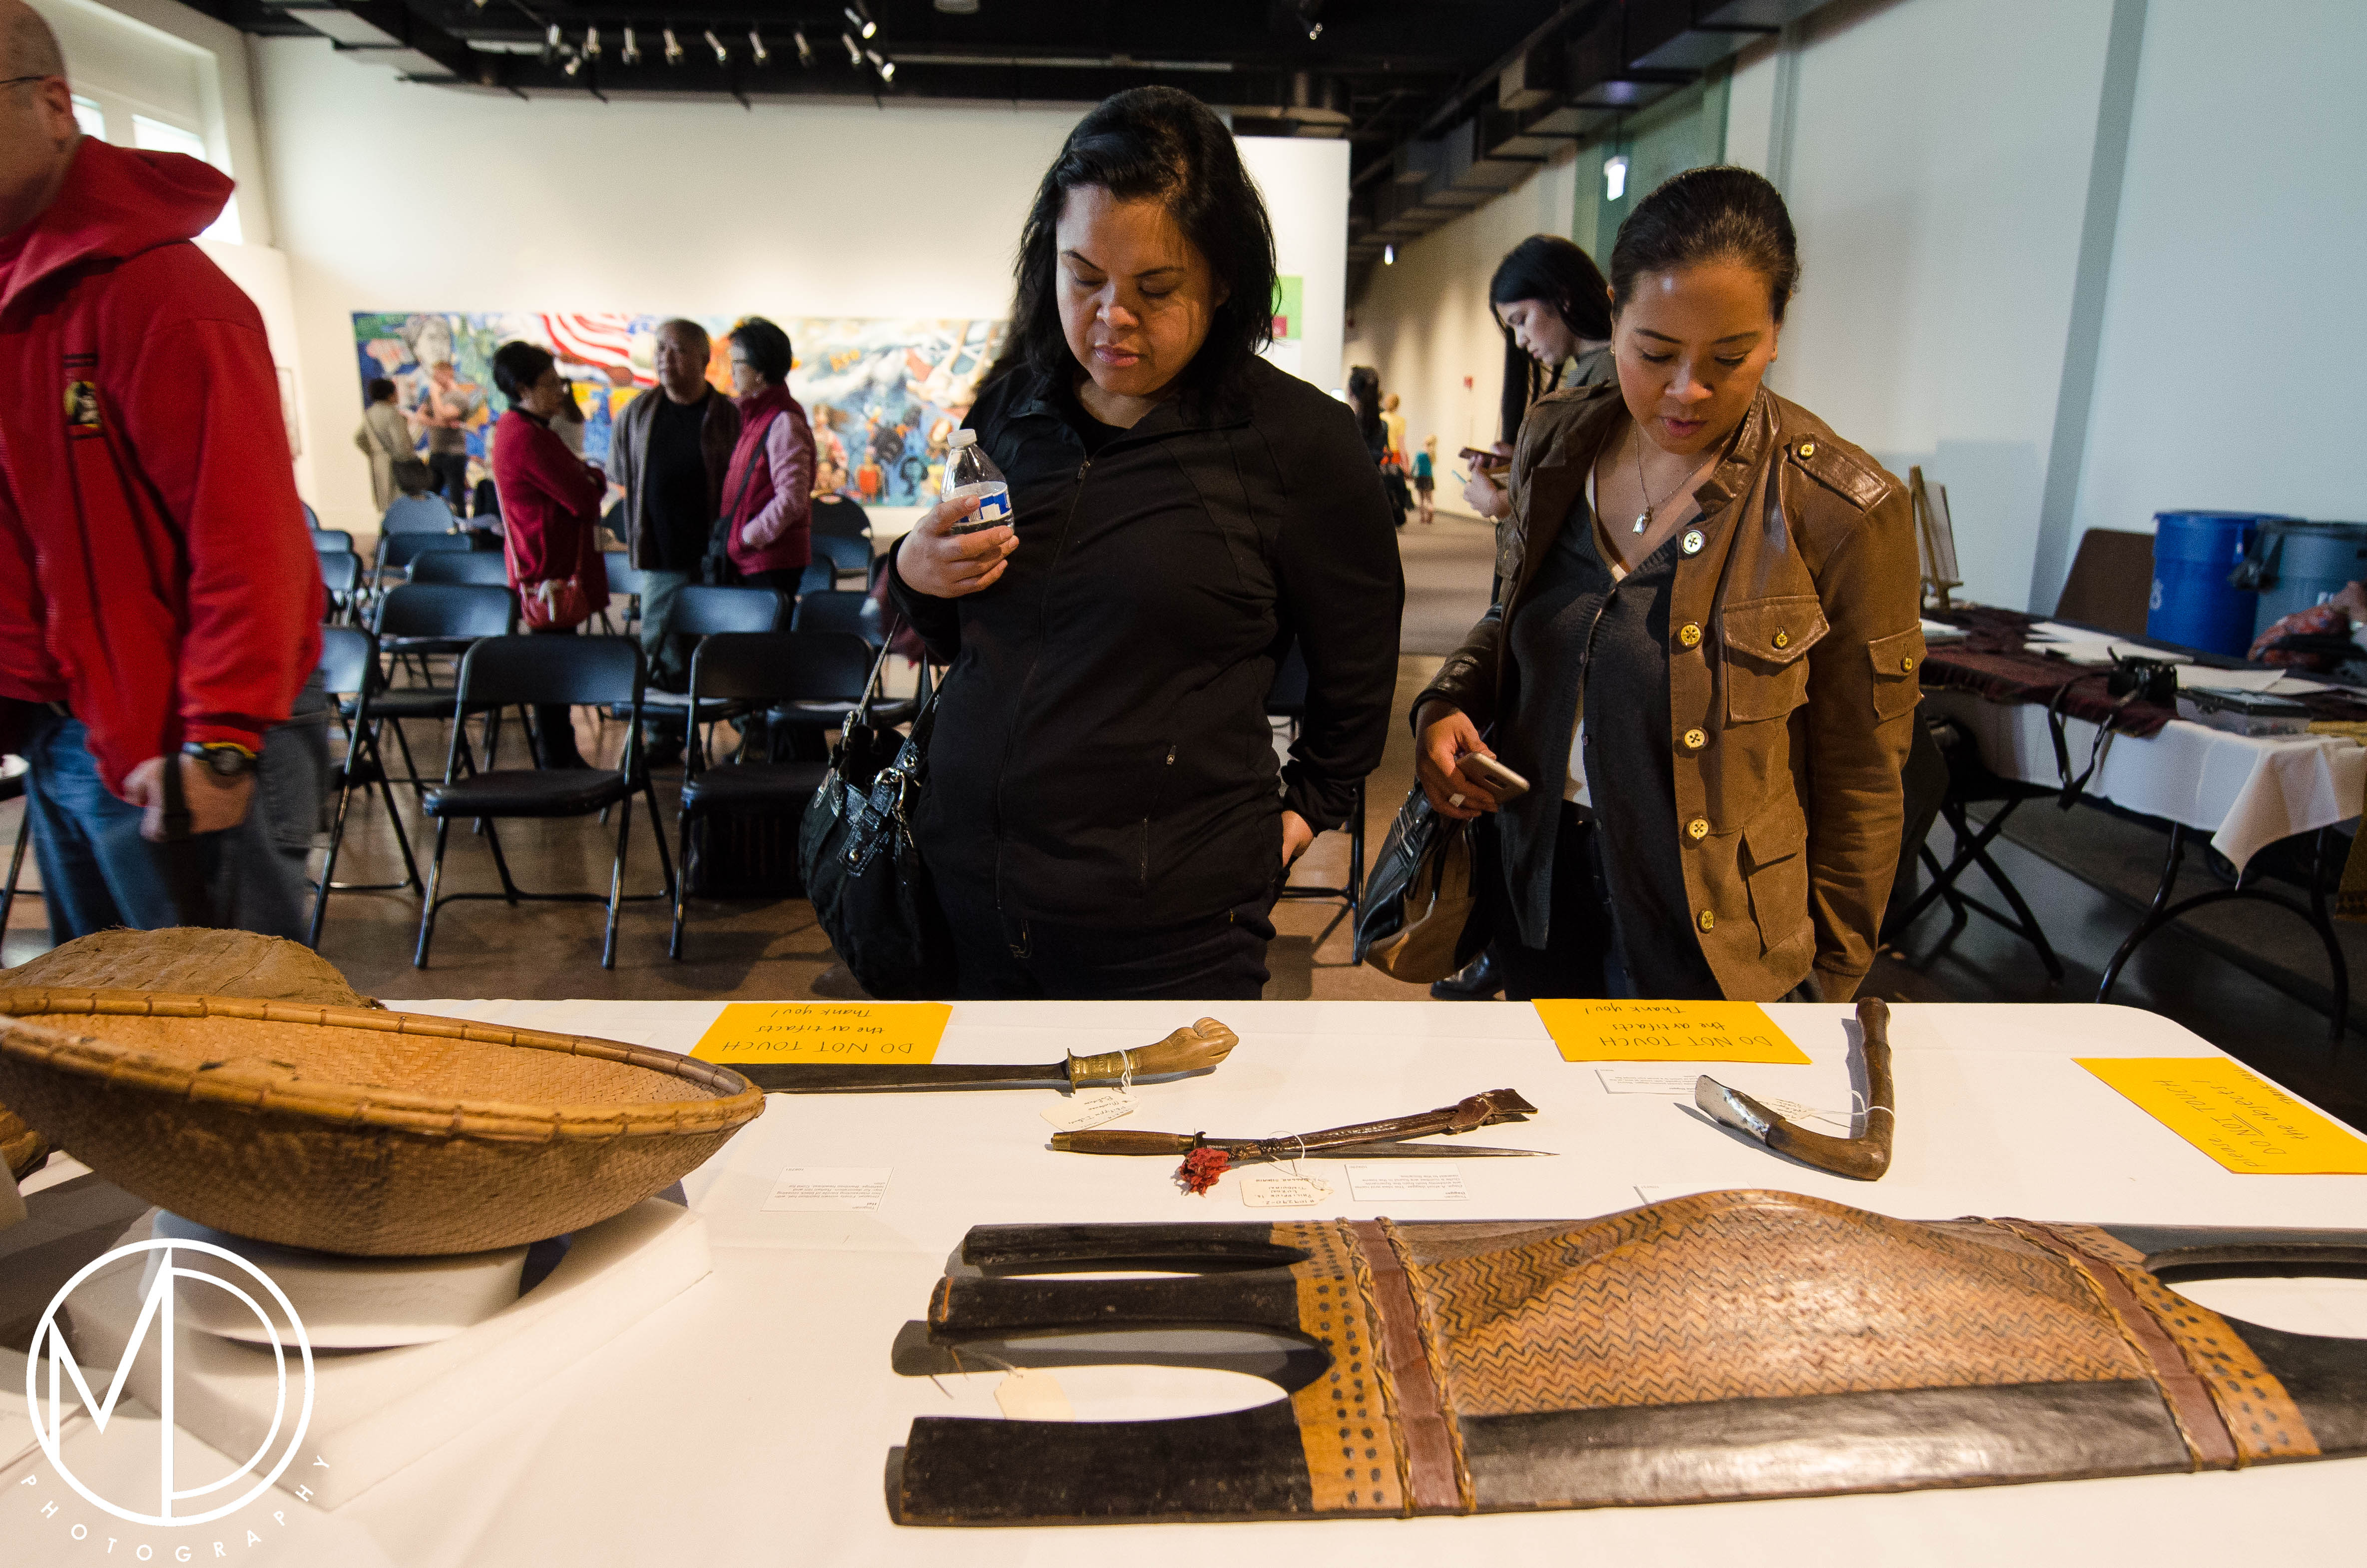 Guests looking at the blades and shields from the collection.